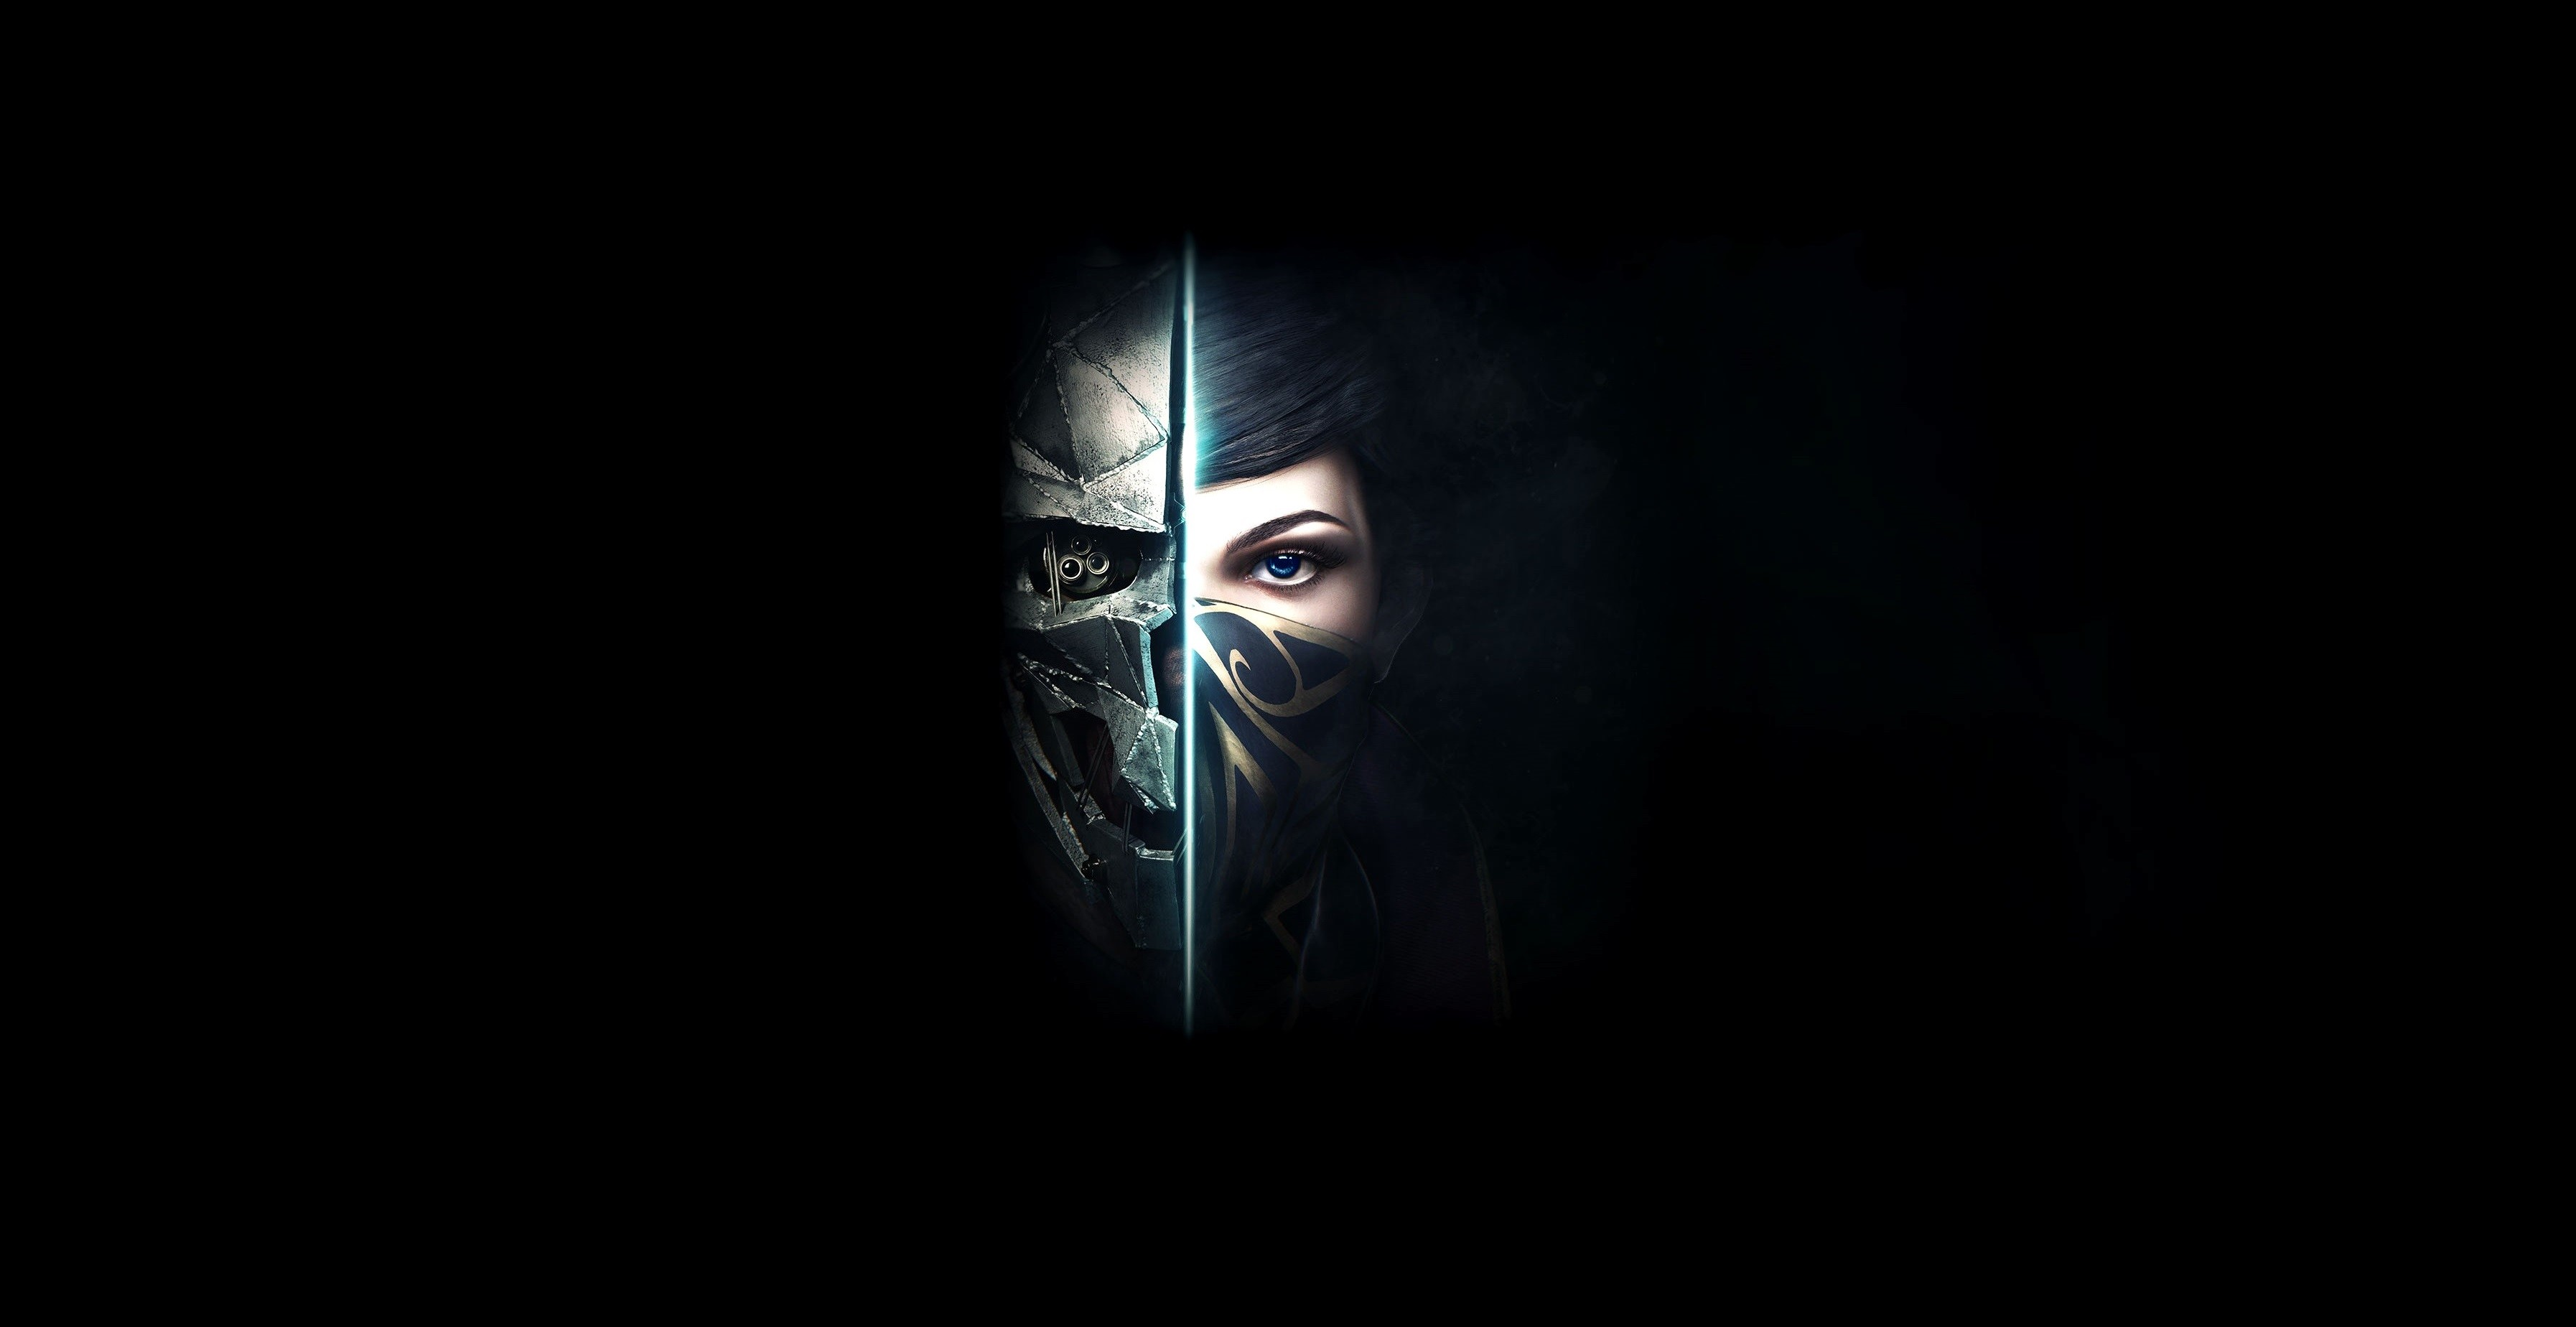 Dishonored 2 Dual Wallpaper By Crowdlegend On Deviantart